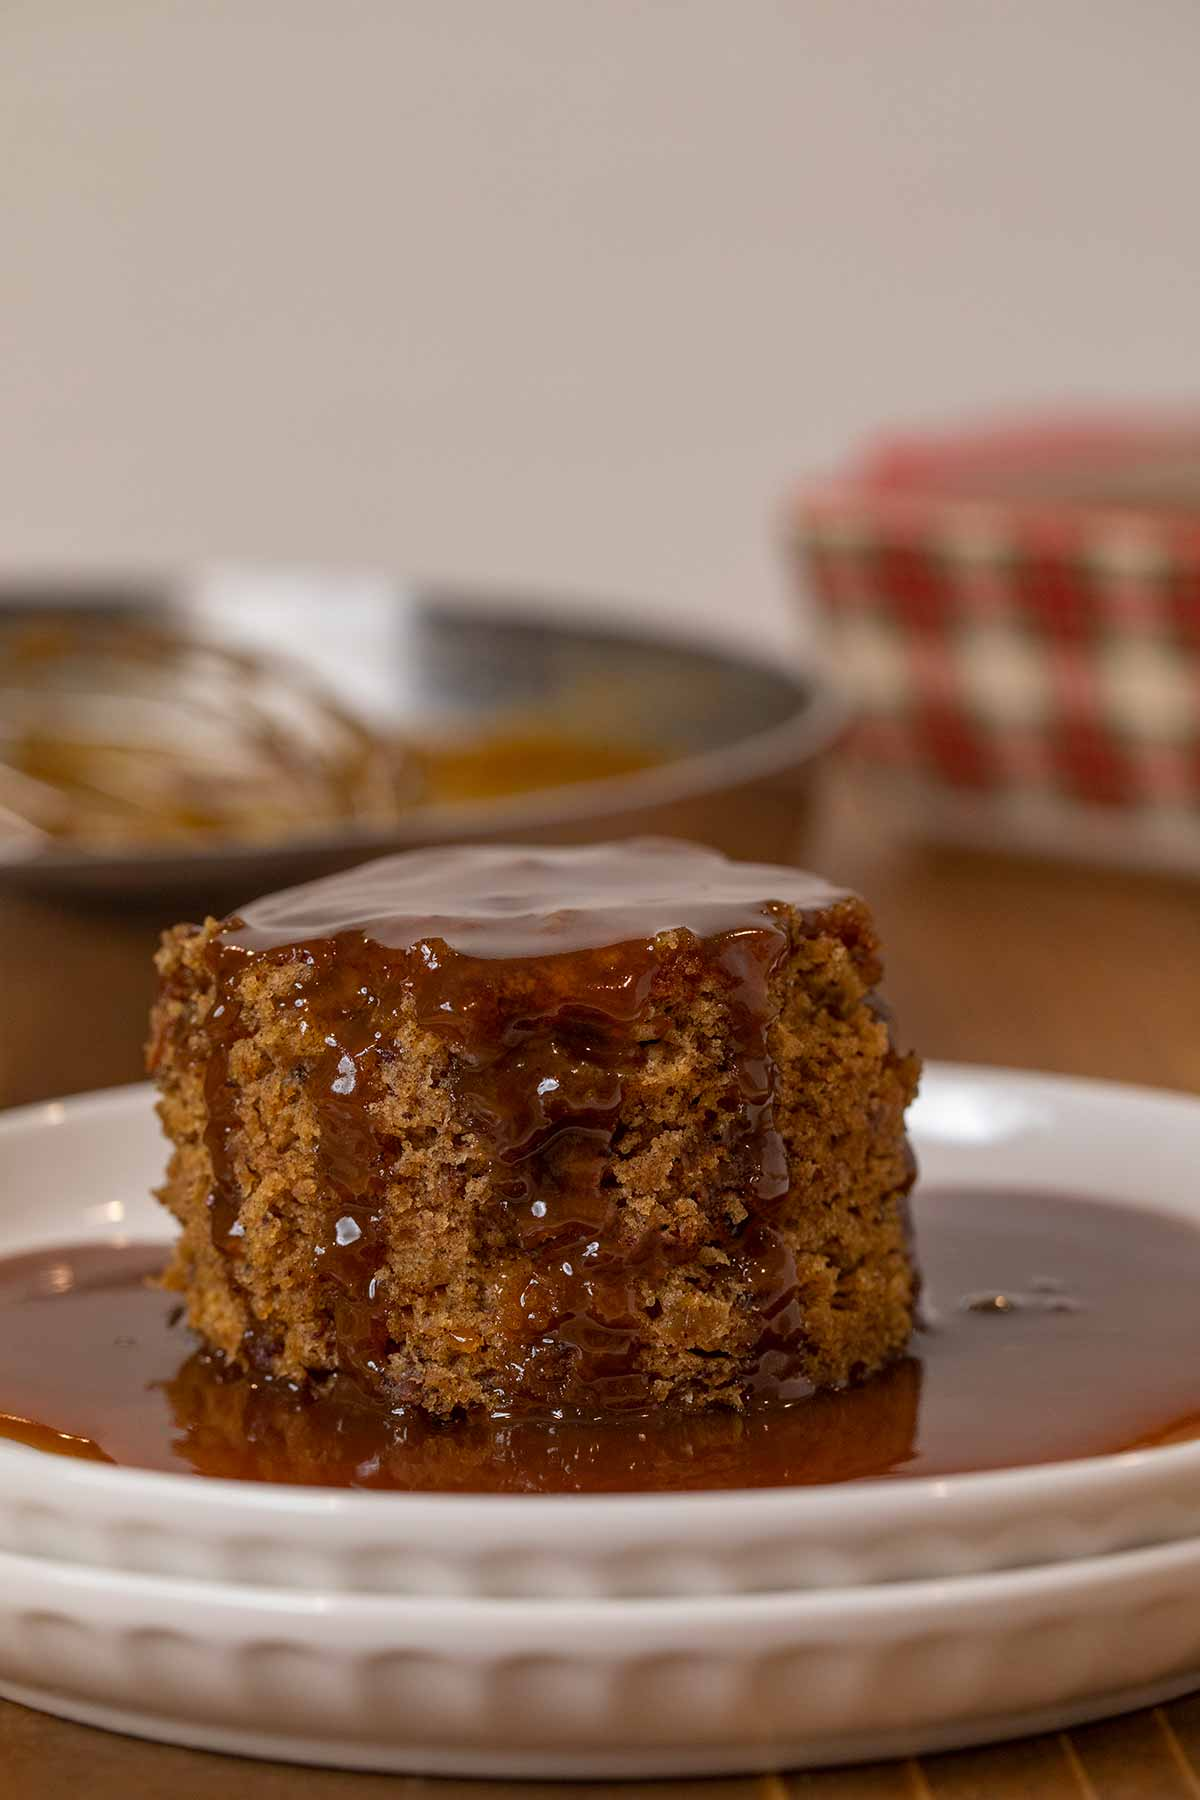 Sticky Toffee Pudding serving on plate with sauce